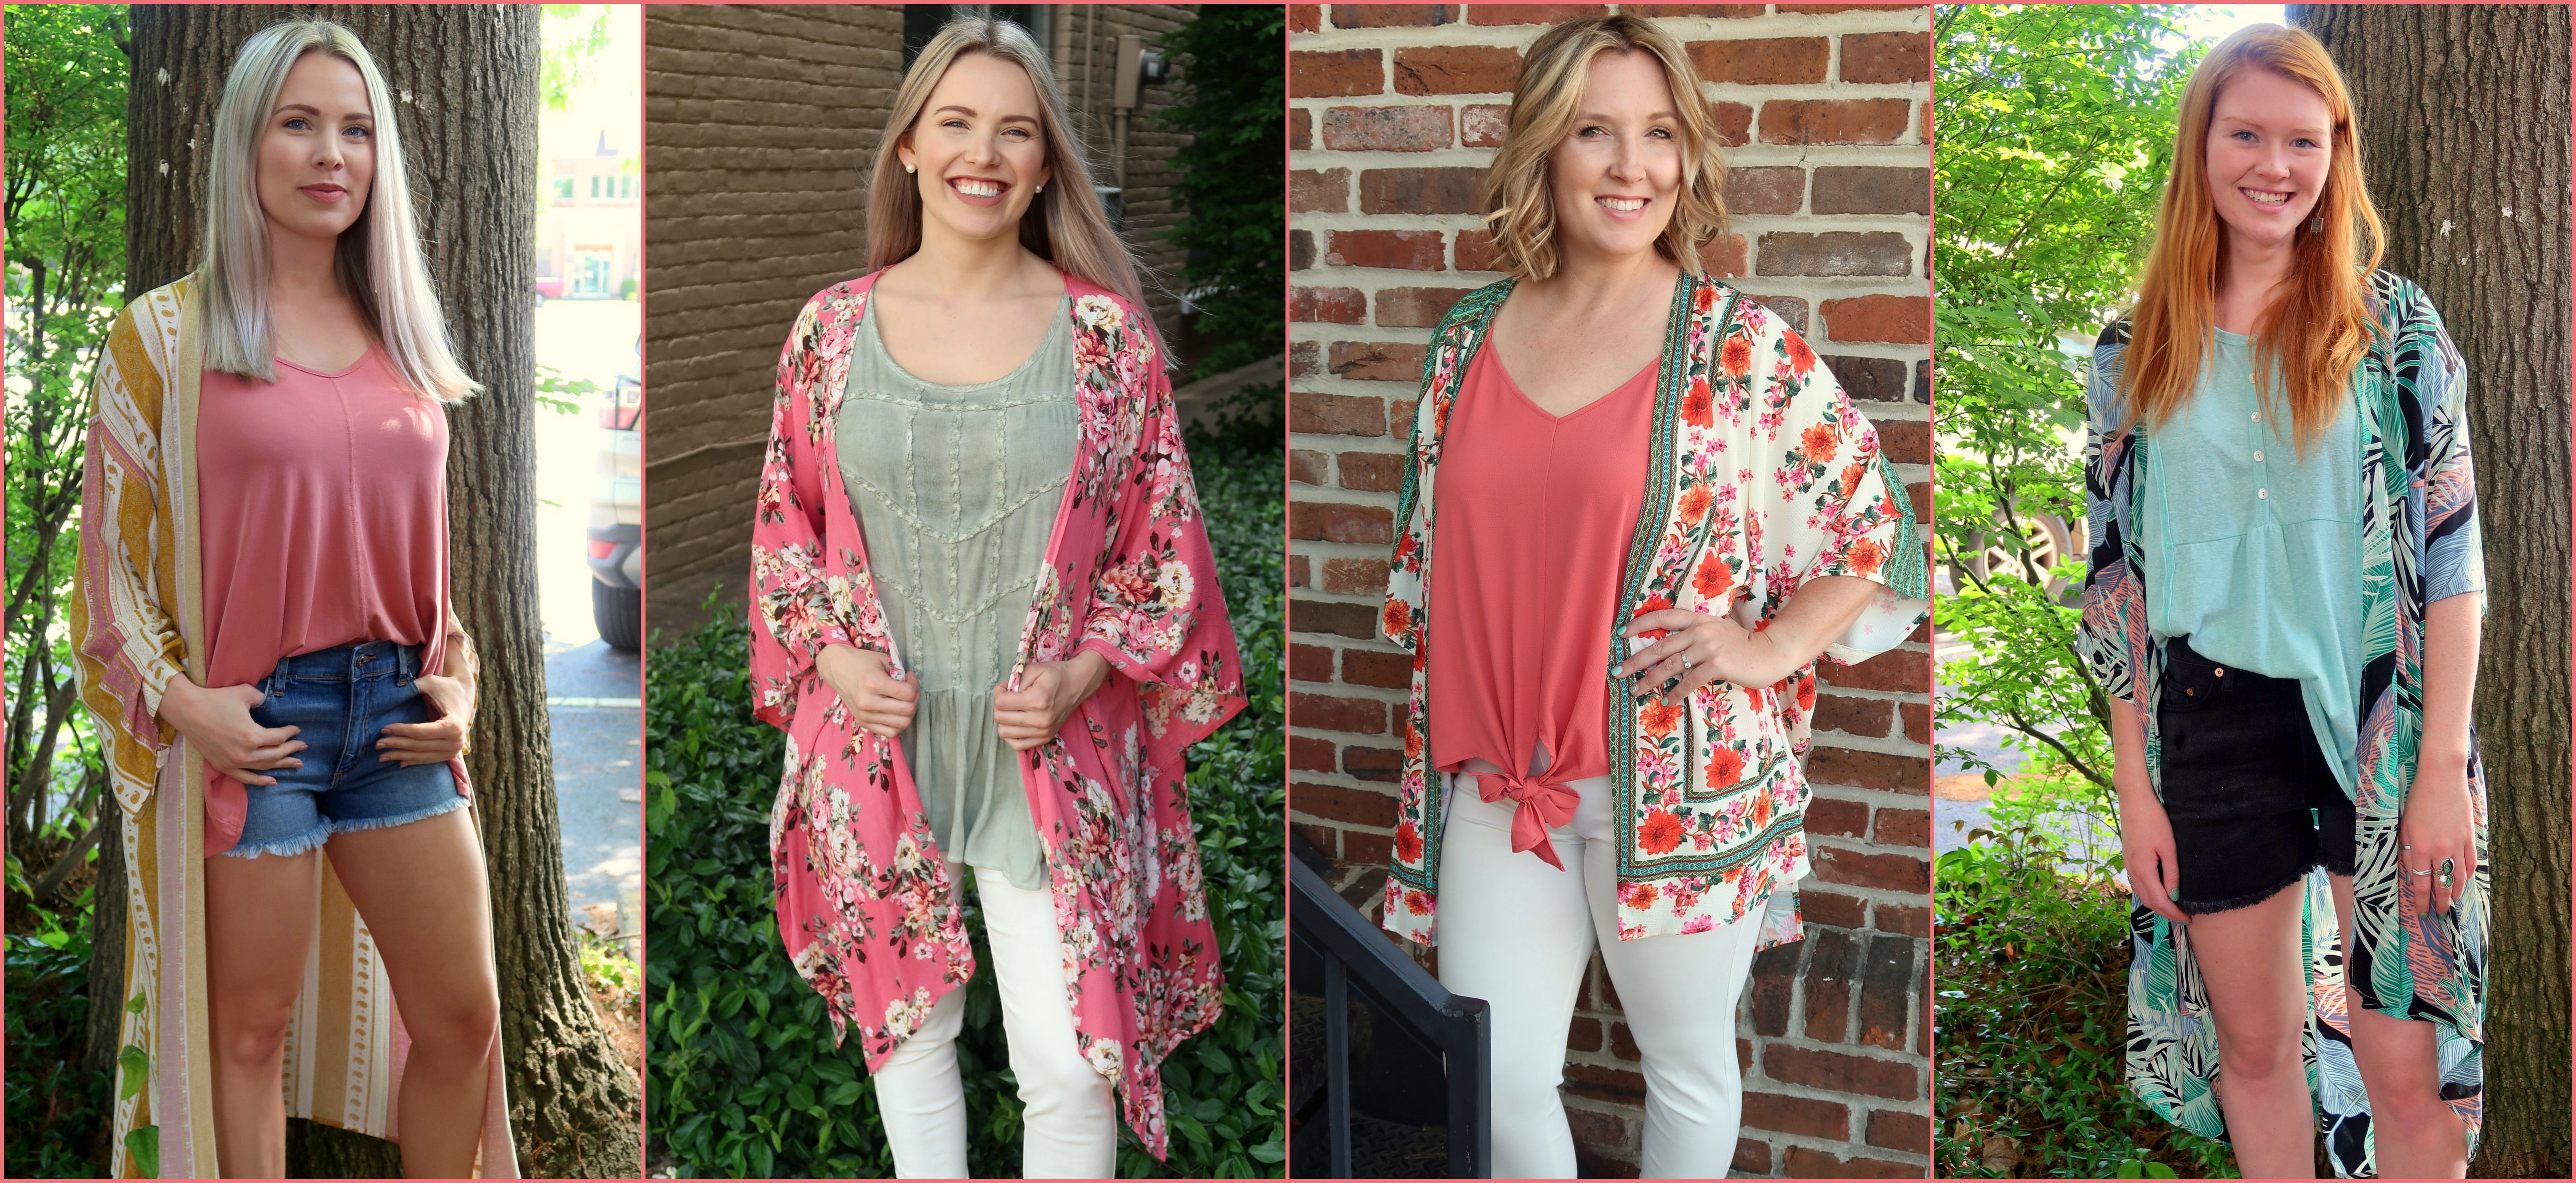 In Bloom Boutique - Trendy and affordable women's and plus